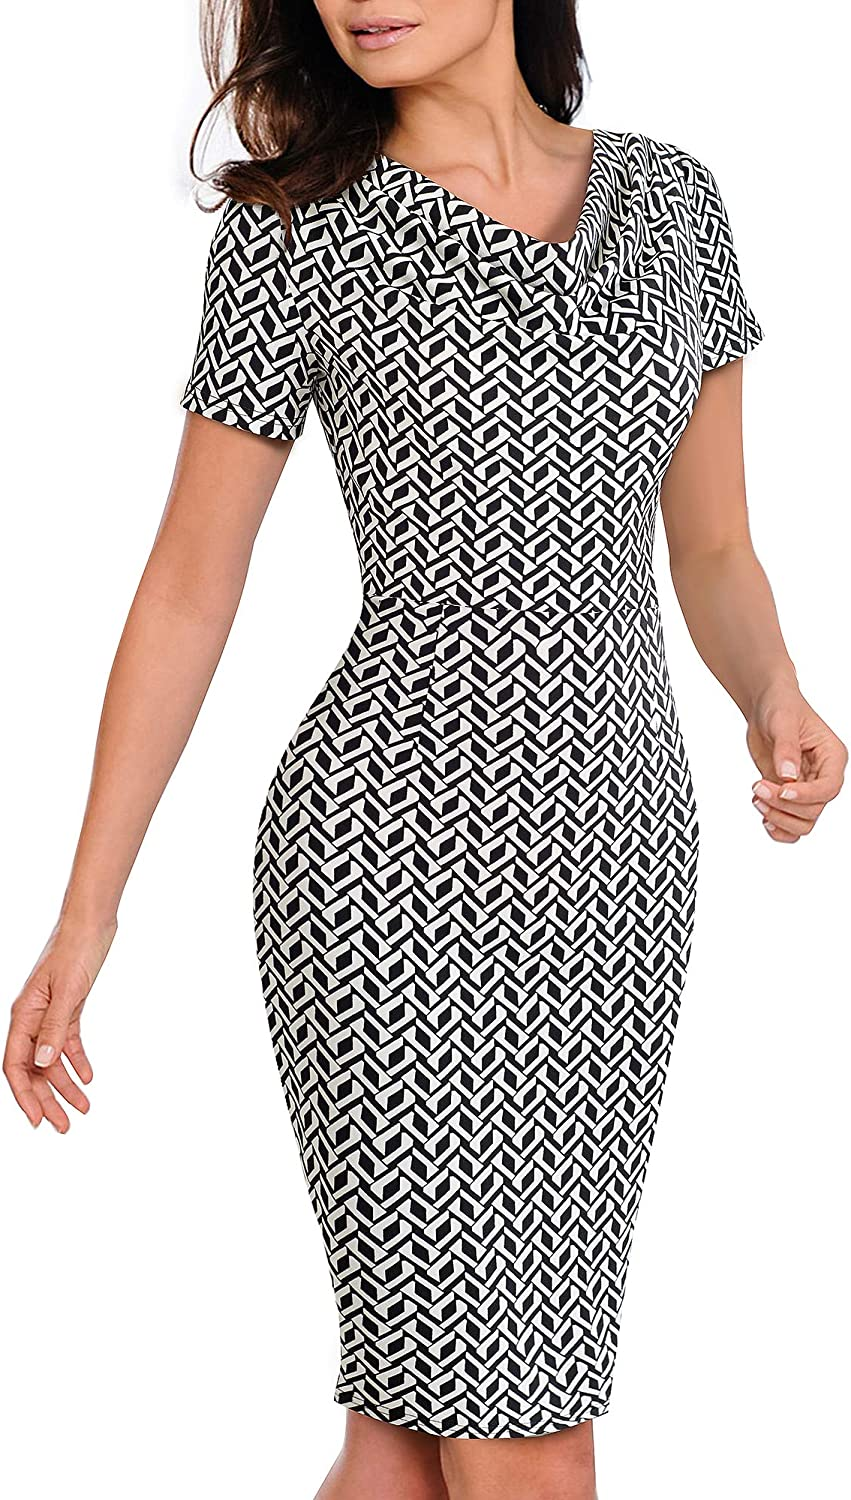 VELJIE Womens Cowl Neck Printed Wear to Work Party Cocktail Dresses